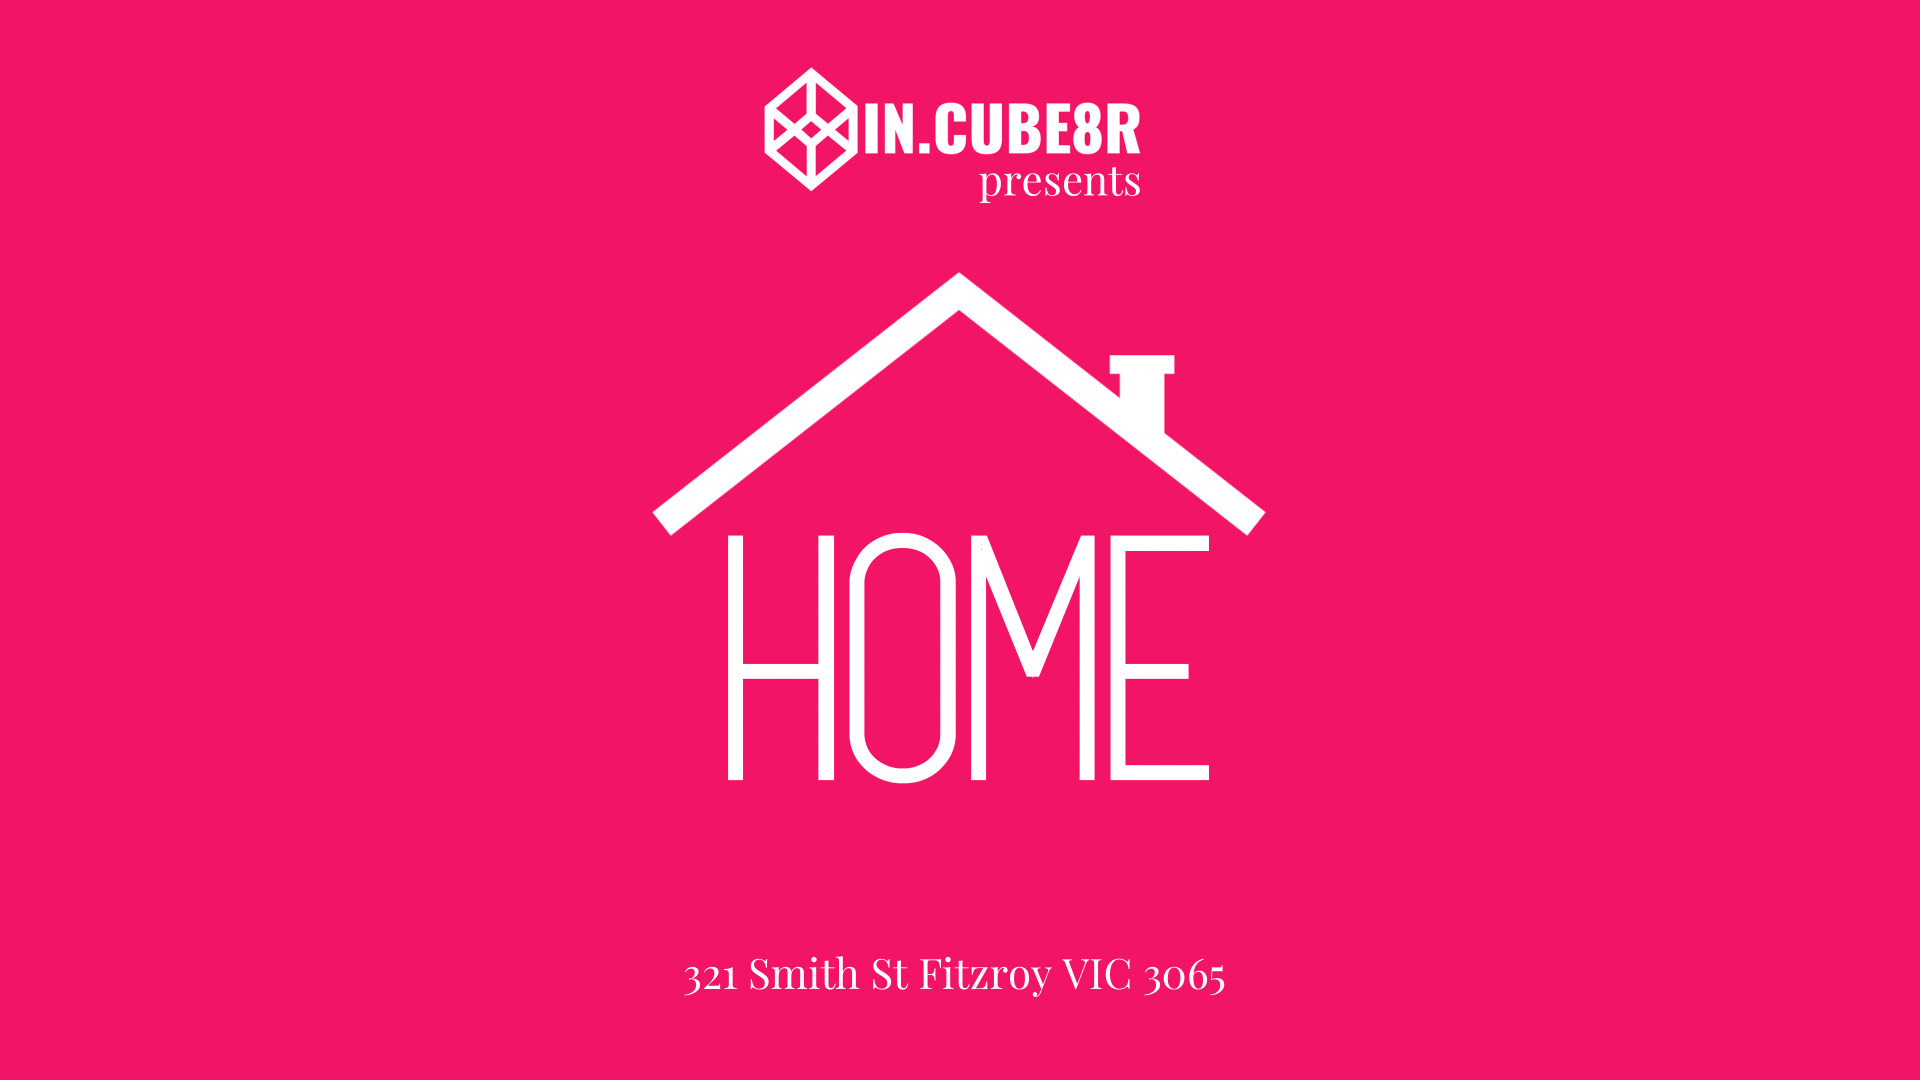 home-call-for-artists ellemay.michael 843303